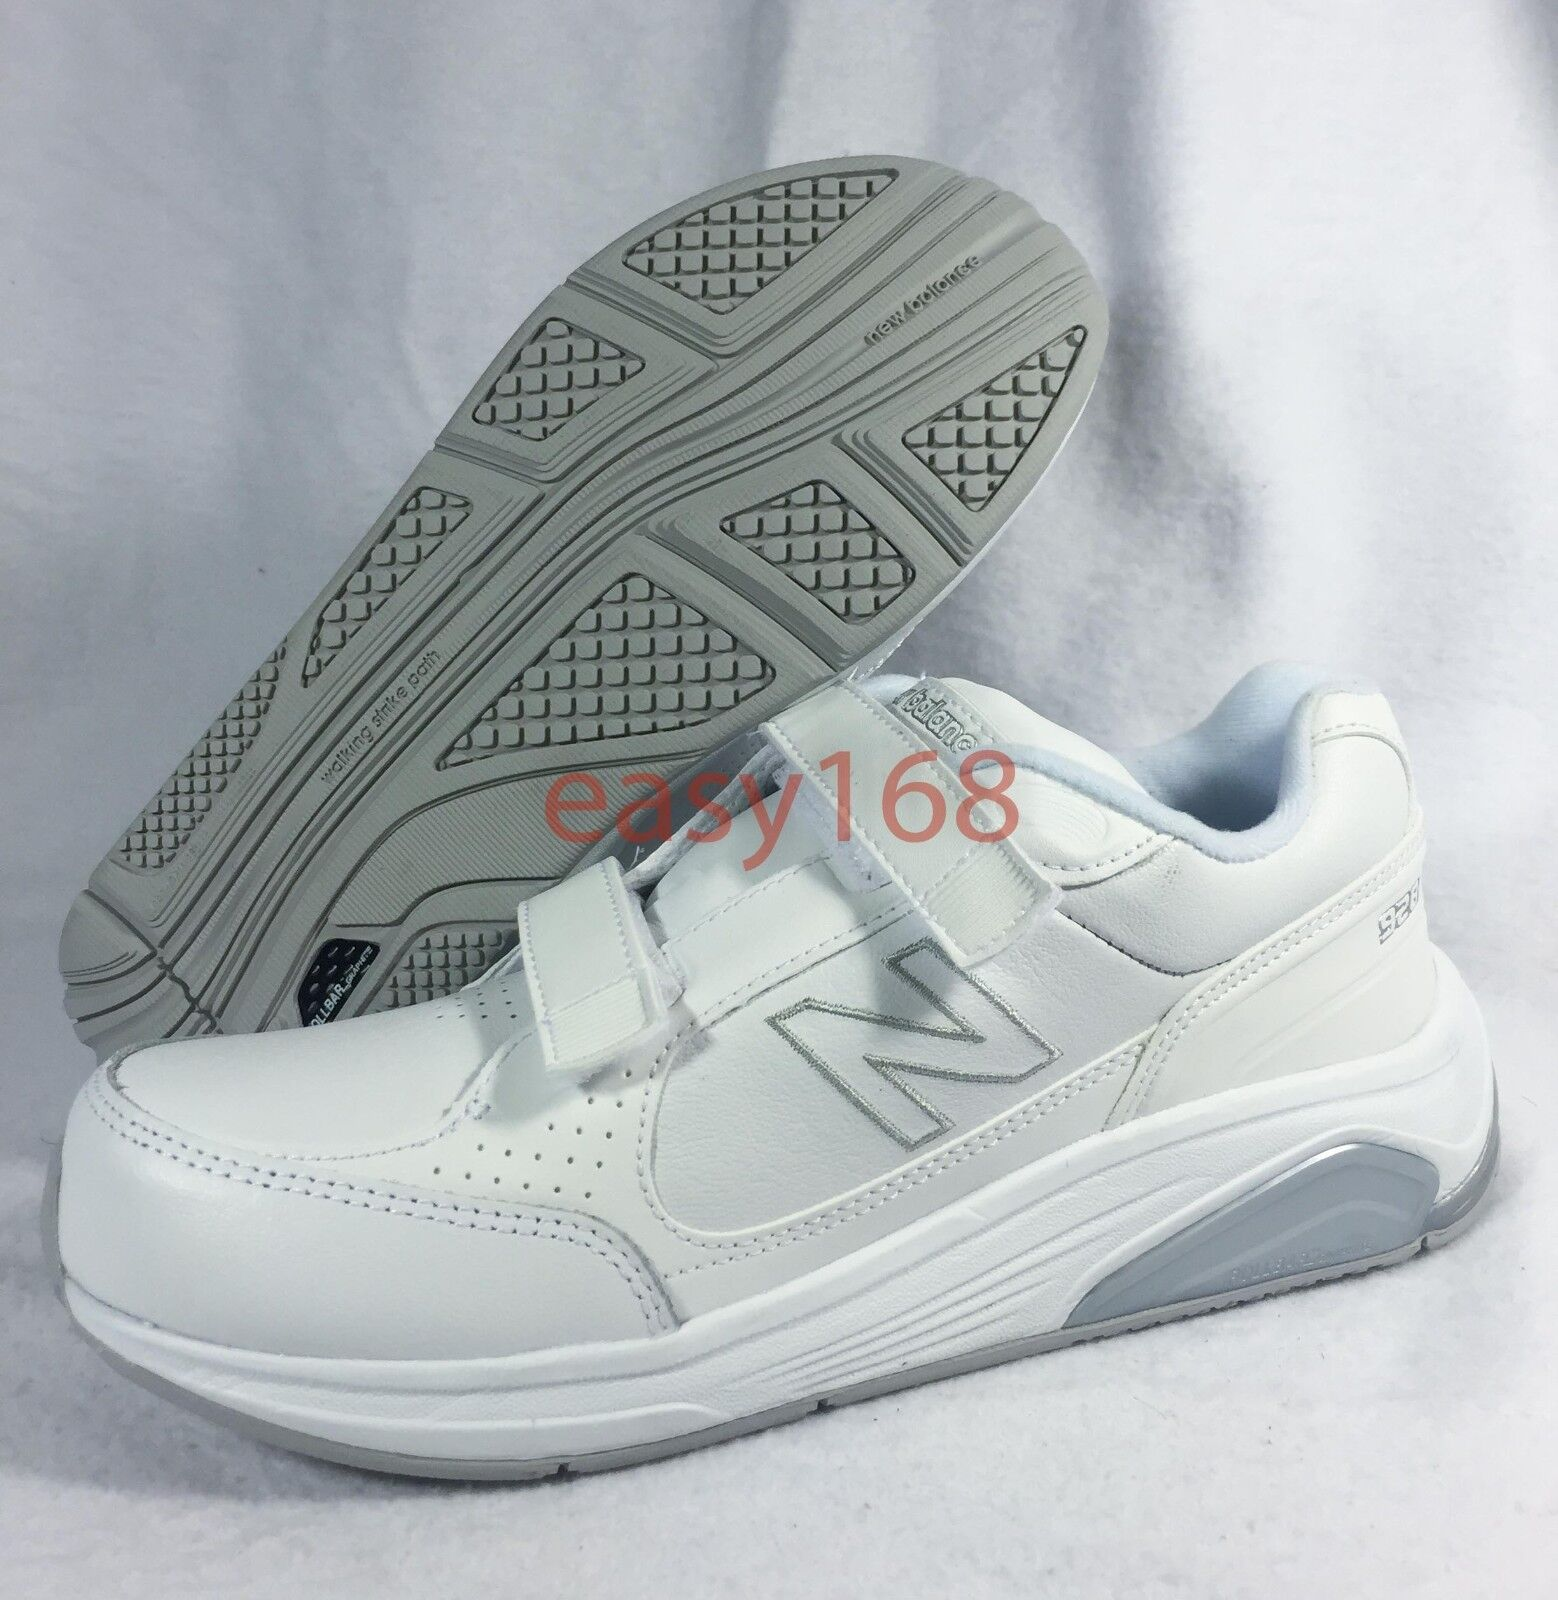 New New Balance 928 Sz 10.5 WMNS Walking Shoes WW928VW White 42.5 2A Hook loop